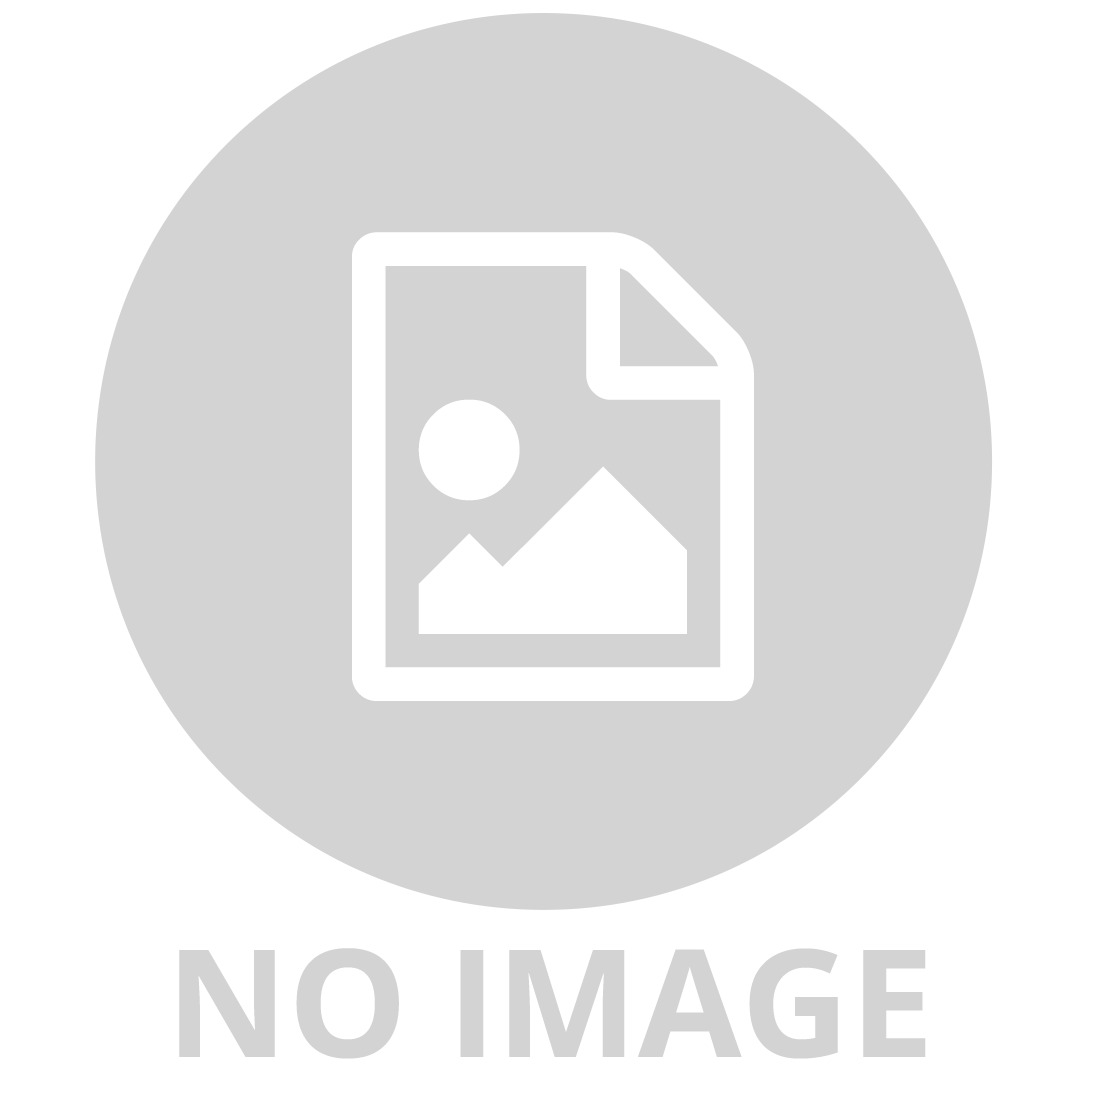 RAVENSBURGER- EMPIRE STATE BUILDING 3D BUILDING 216PC